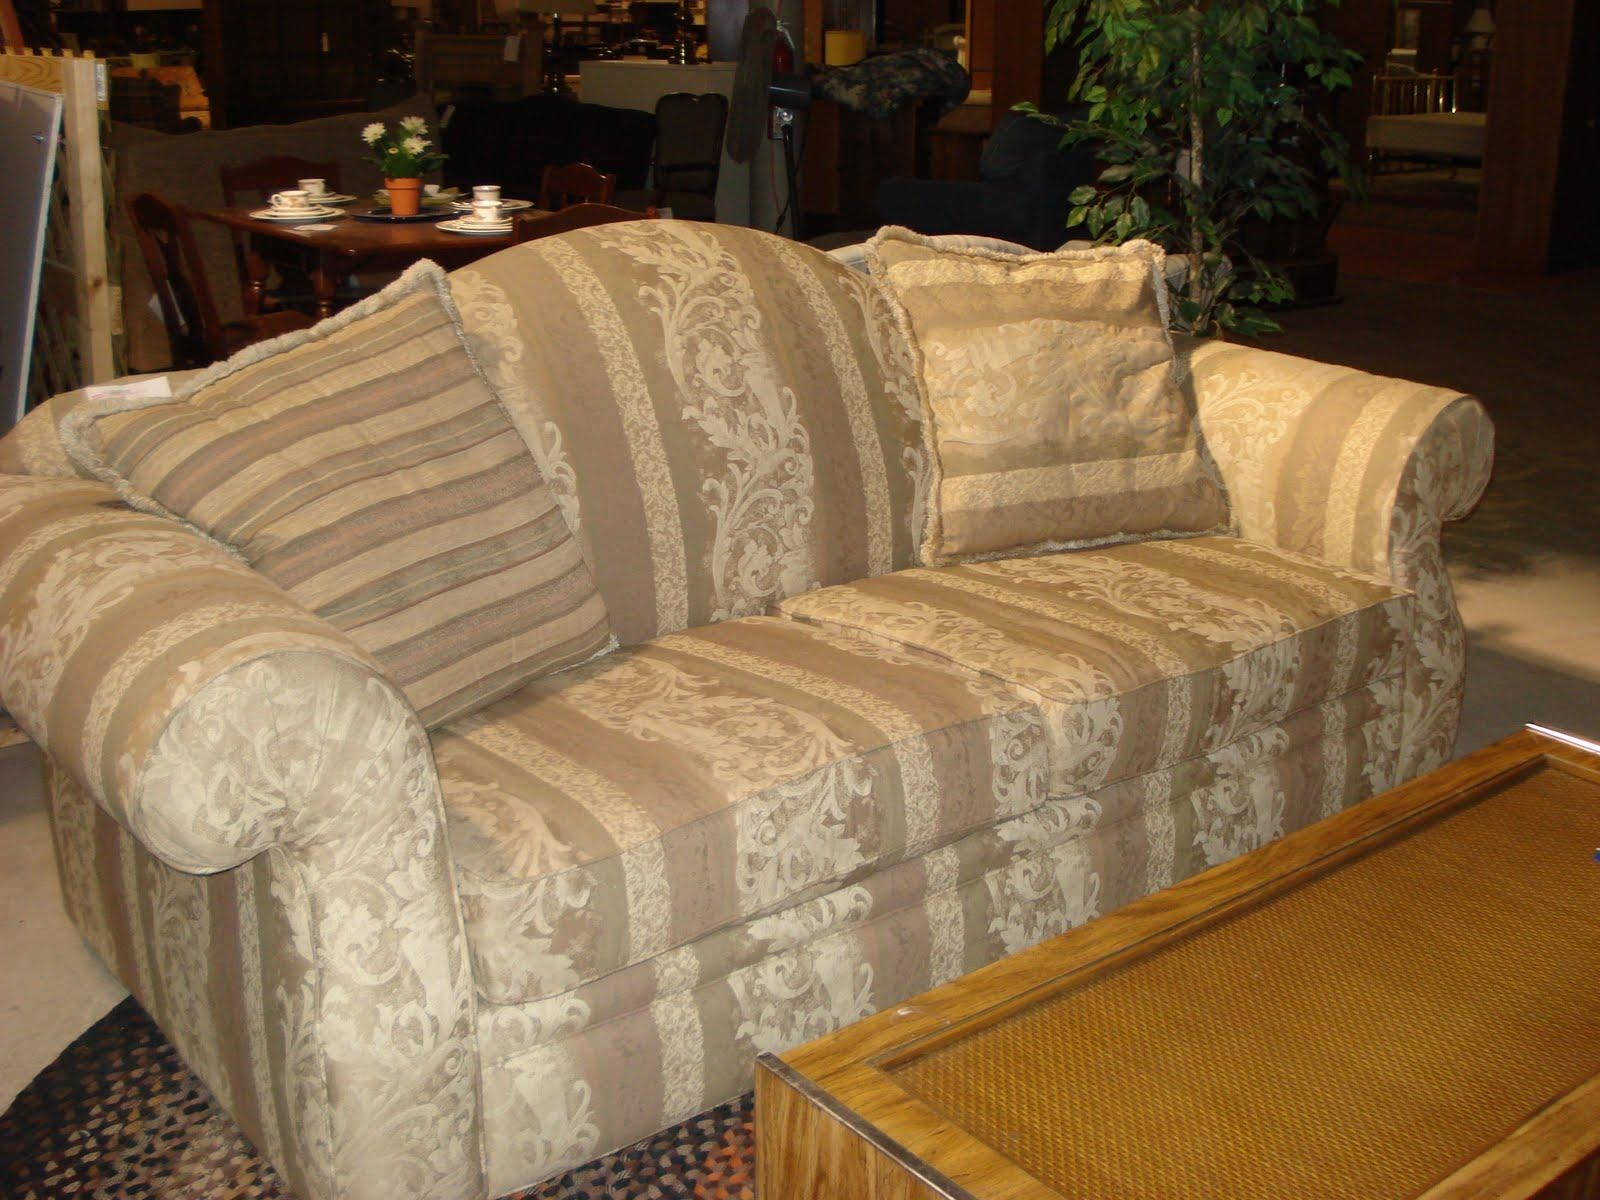 Unique Alan White Sofa With Image 16 Of 17 | Carehouse with regard to Alan White Sofas